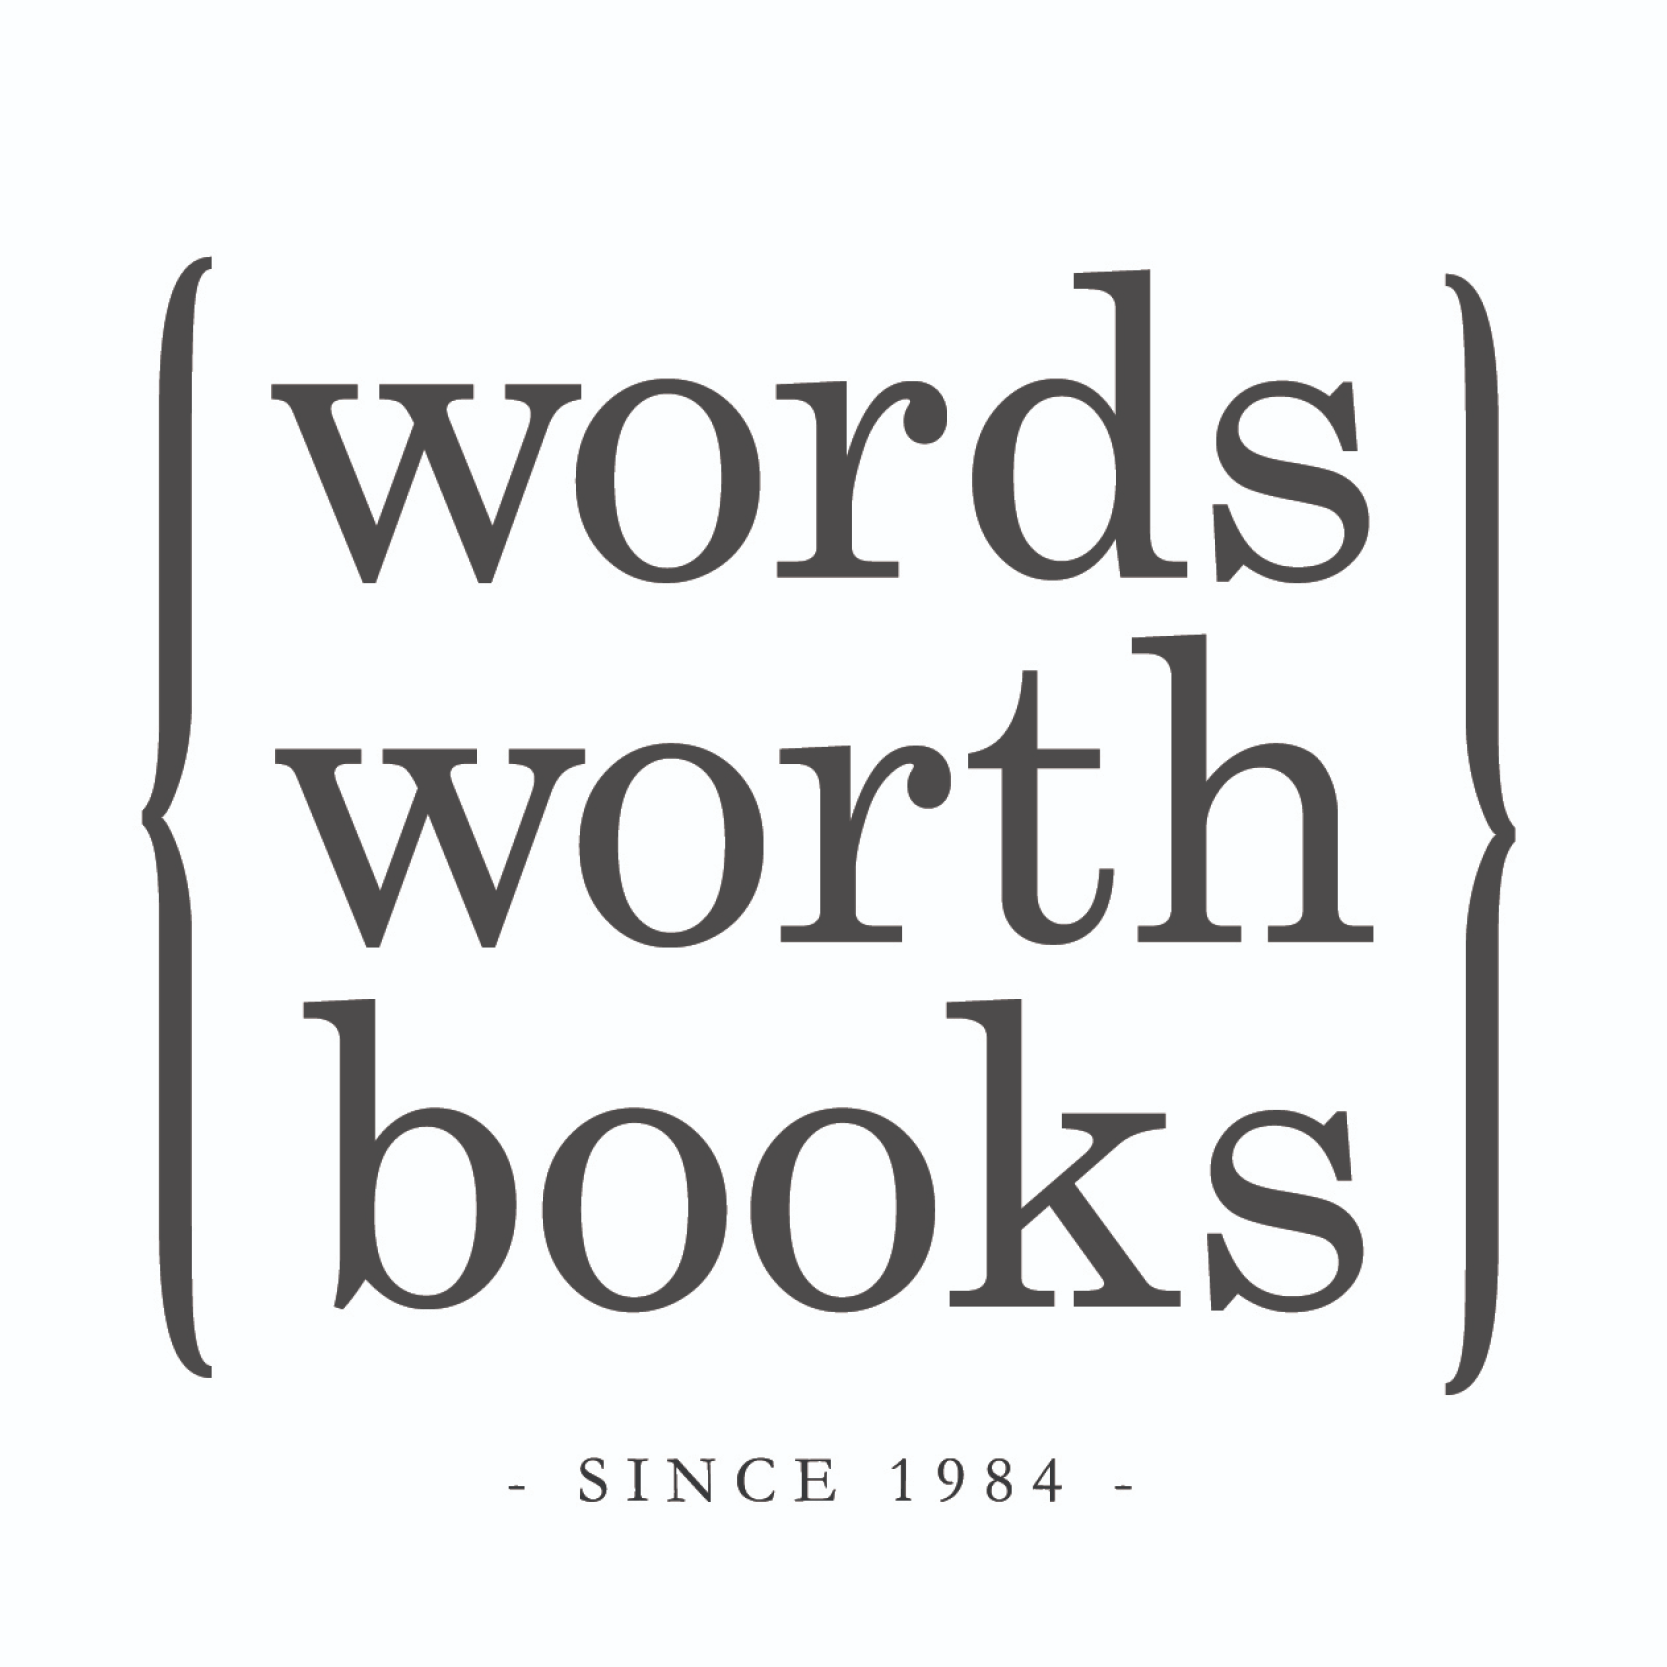 http://www.wordsworthbooks.com/